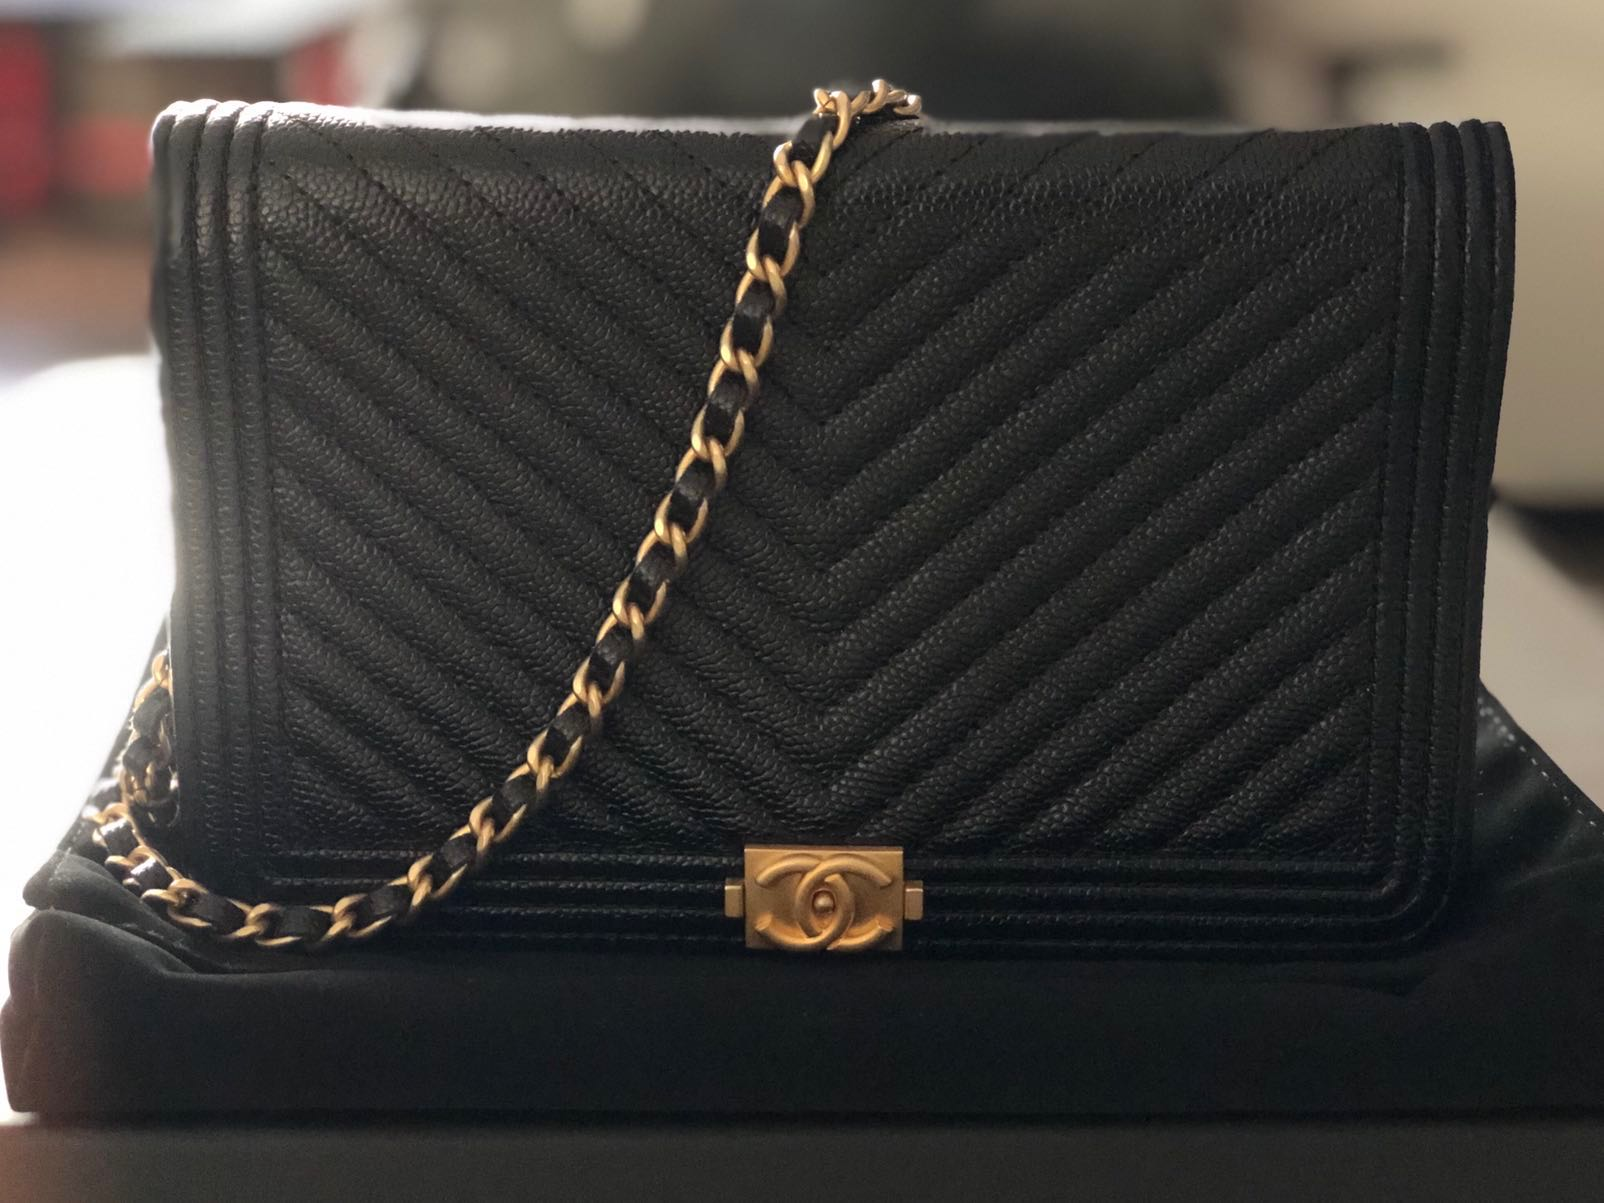 4a17d612602a NEW Limited Edition Chanel WOC Chevron in Caviar Leather, Luxury ...